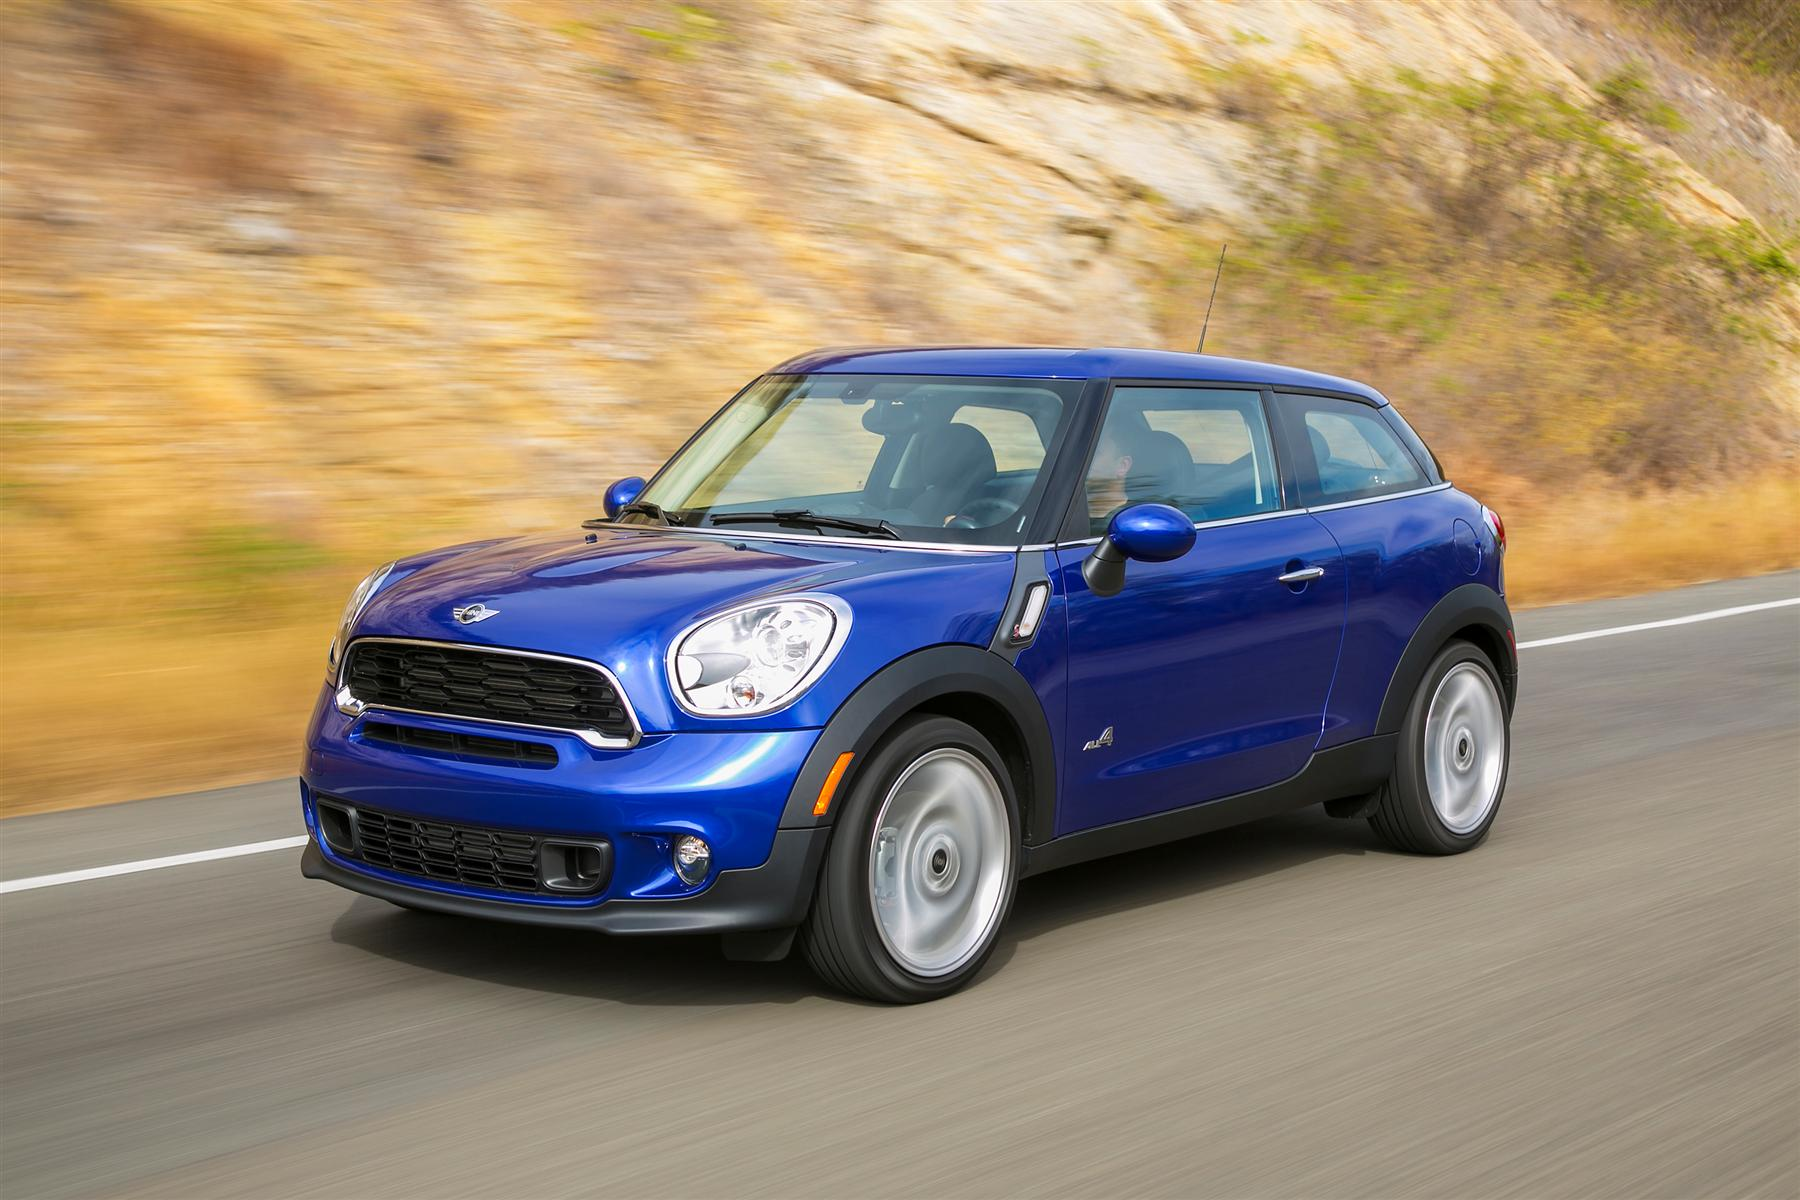 Manufacturer photo: With its two doors and large tailgate, the 2013 MINI Paceman brings an air of sporting elegance and individualism to the premium compact segment